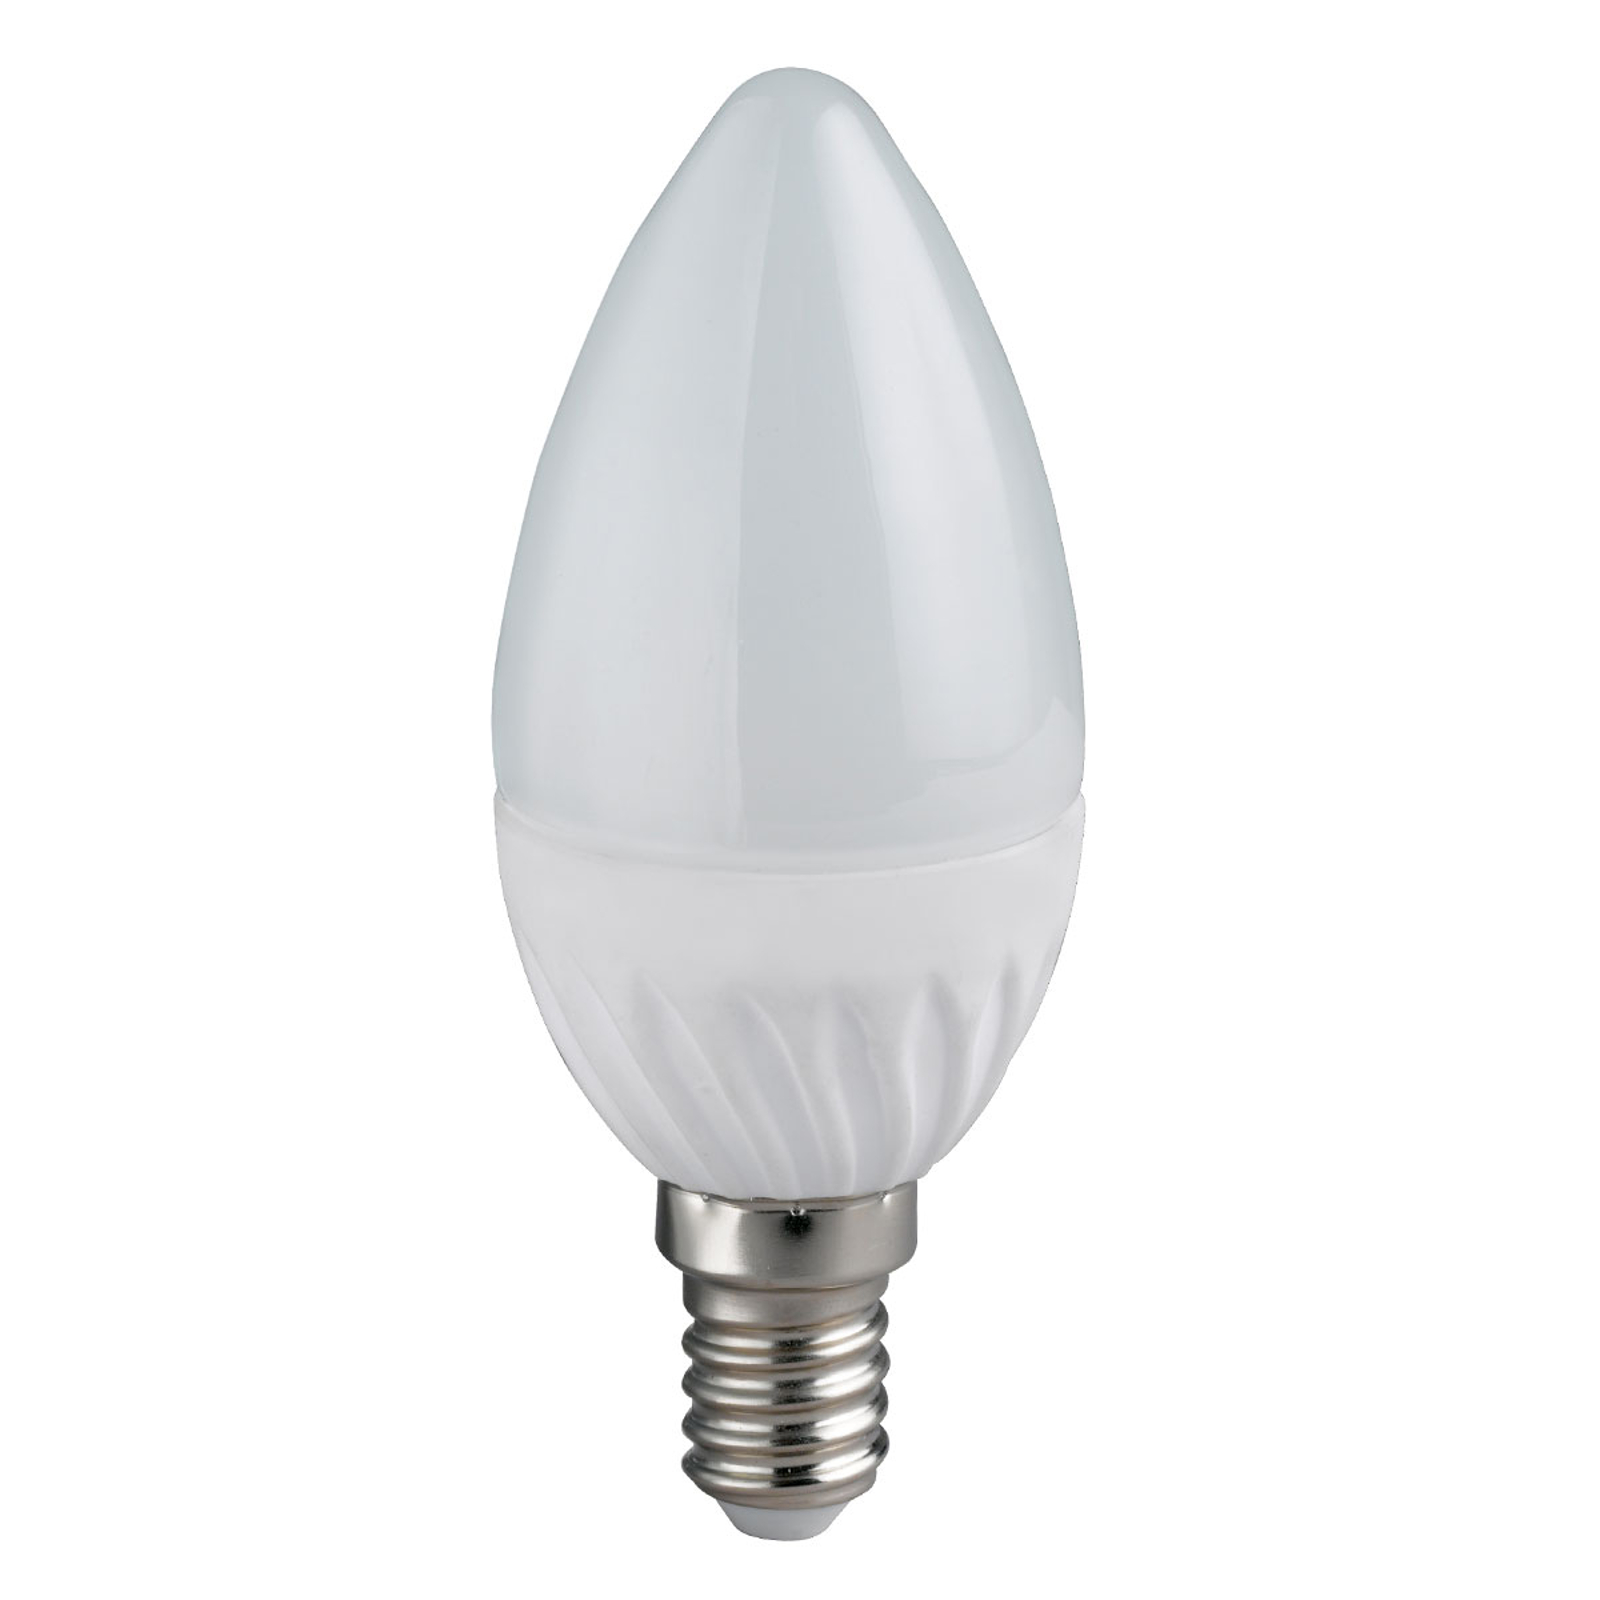 Candela LED E14 5W, dimming, bianco caldo